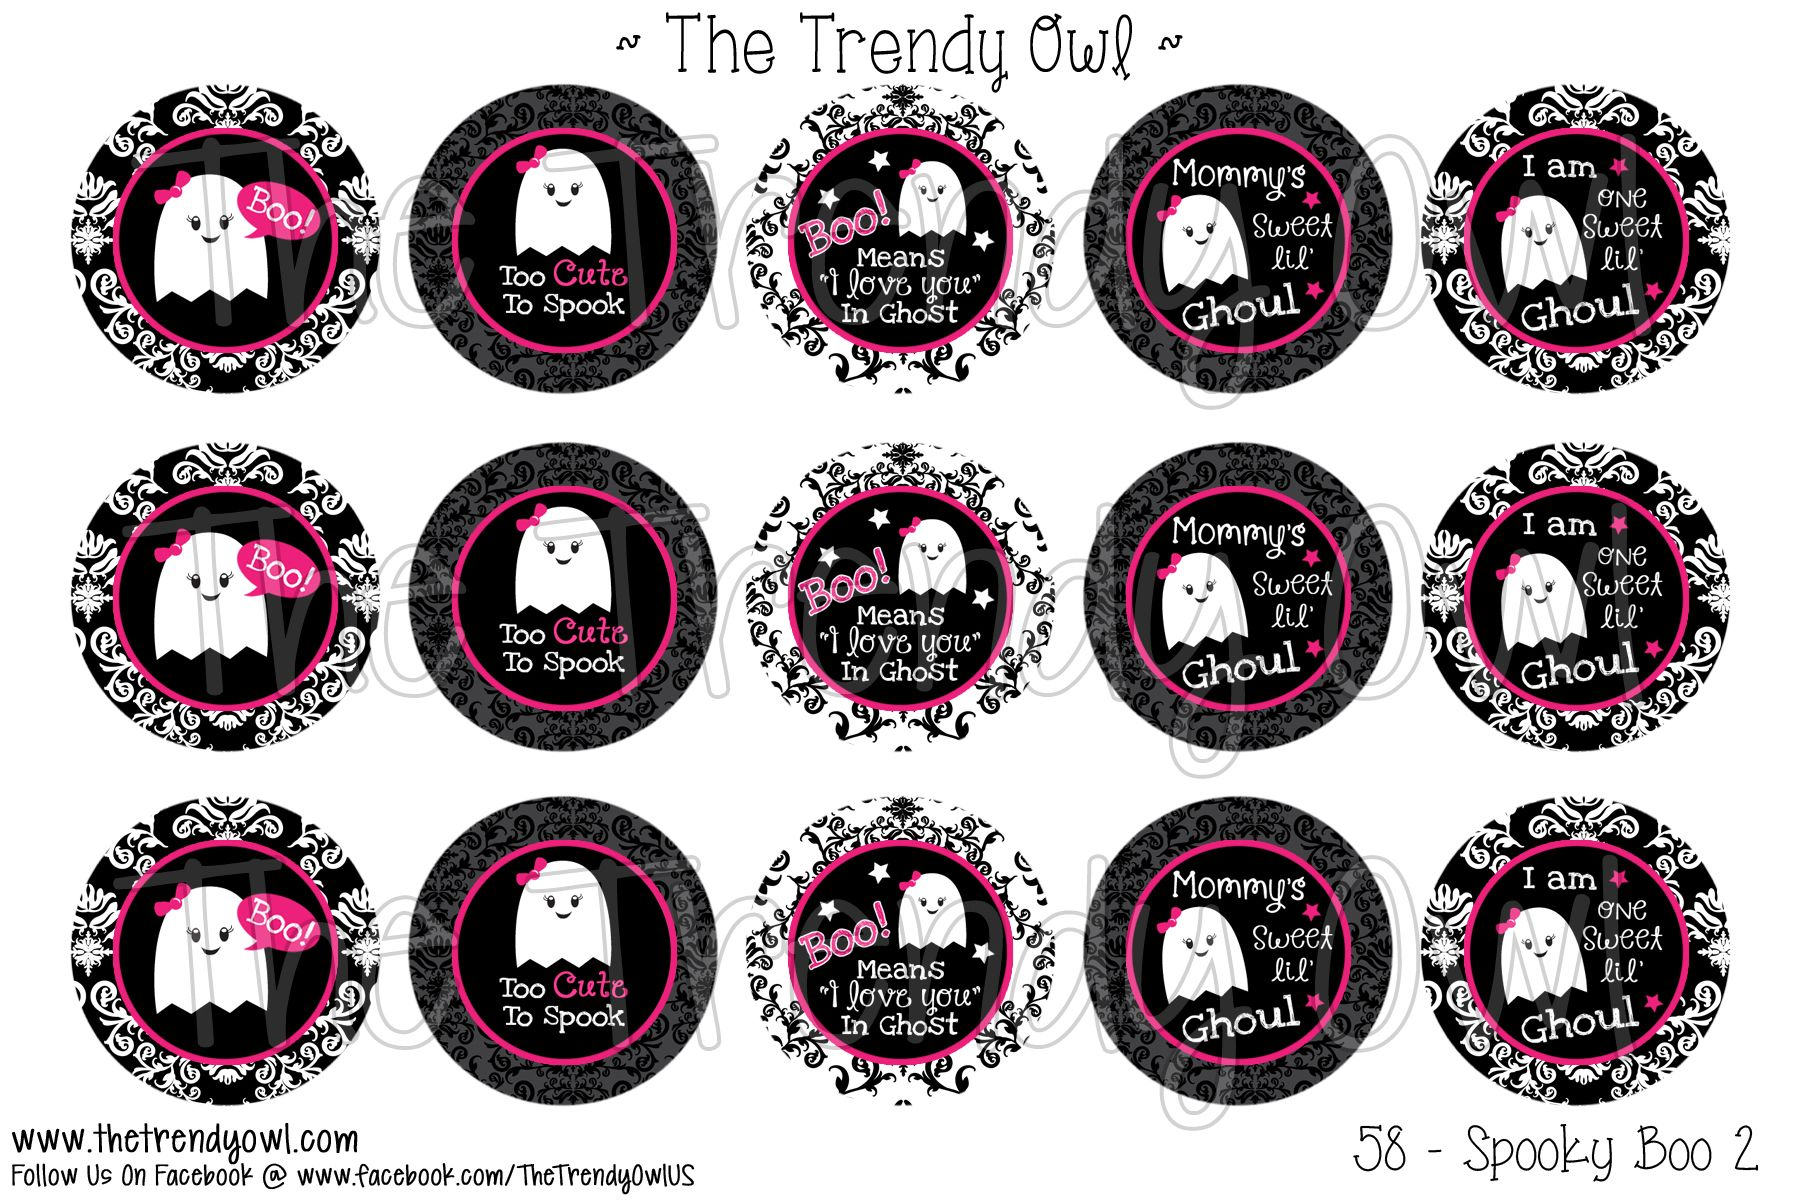 Diy halloween ghost3 - Spooky Boo Ghost 3 Shop Our Digital Bottle Cap Images Www Thetrendyowl